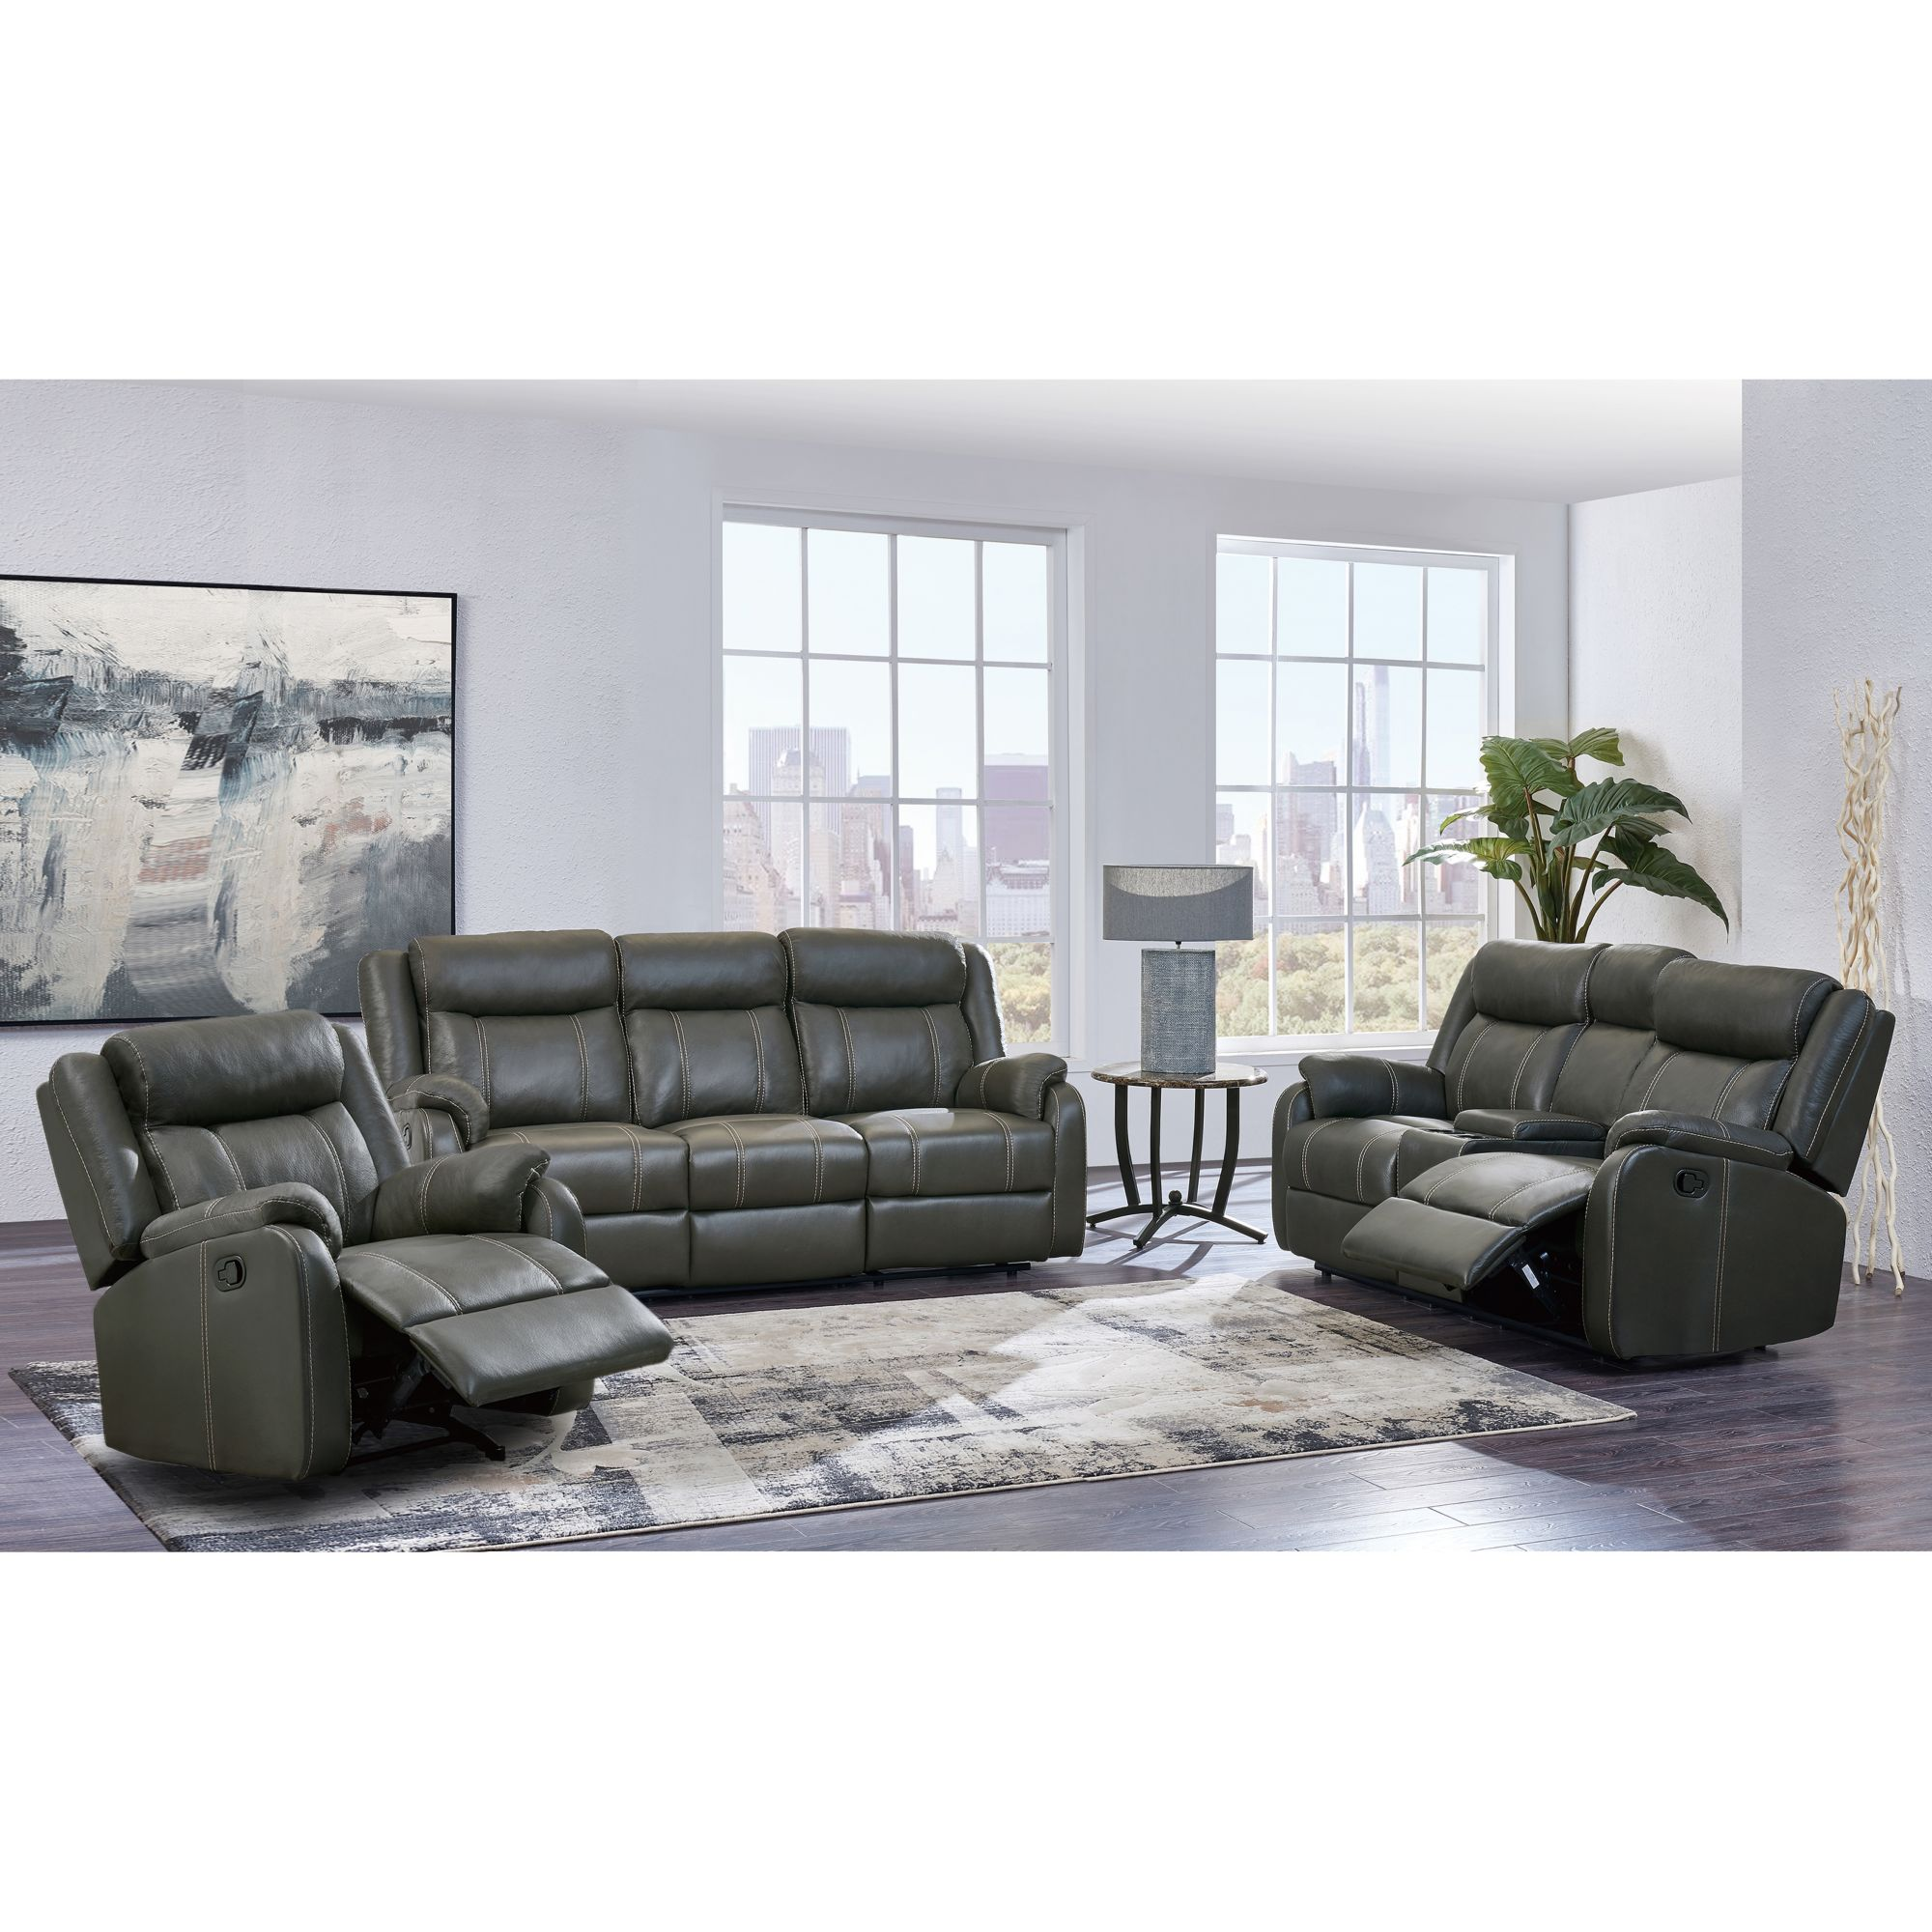 Carson 3 Pc Reclining Living Room Set Gray Bjs Wholesale Club